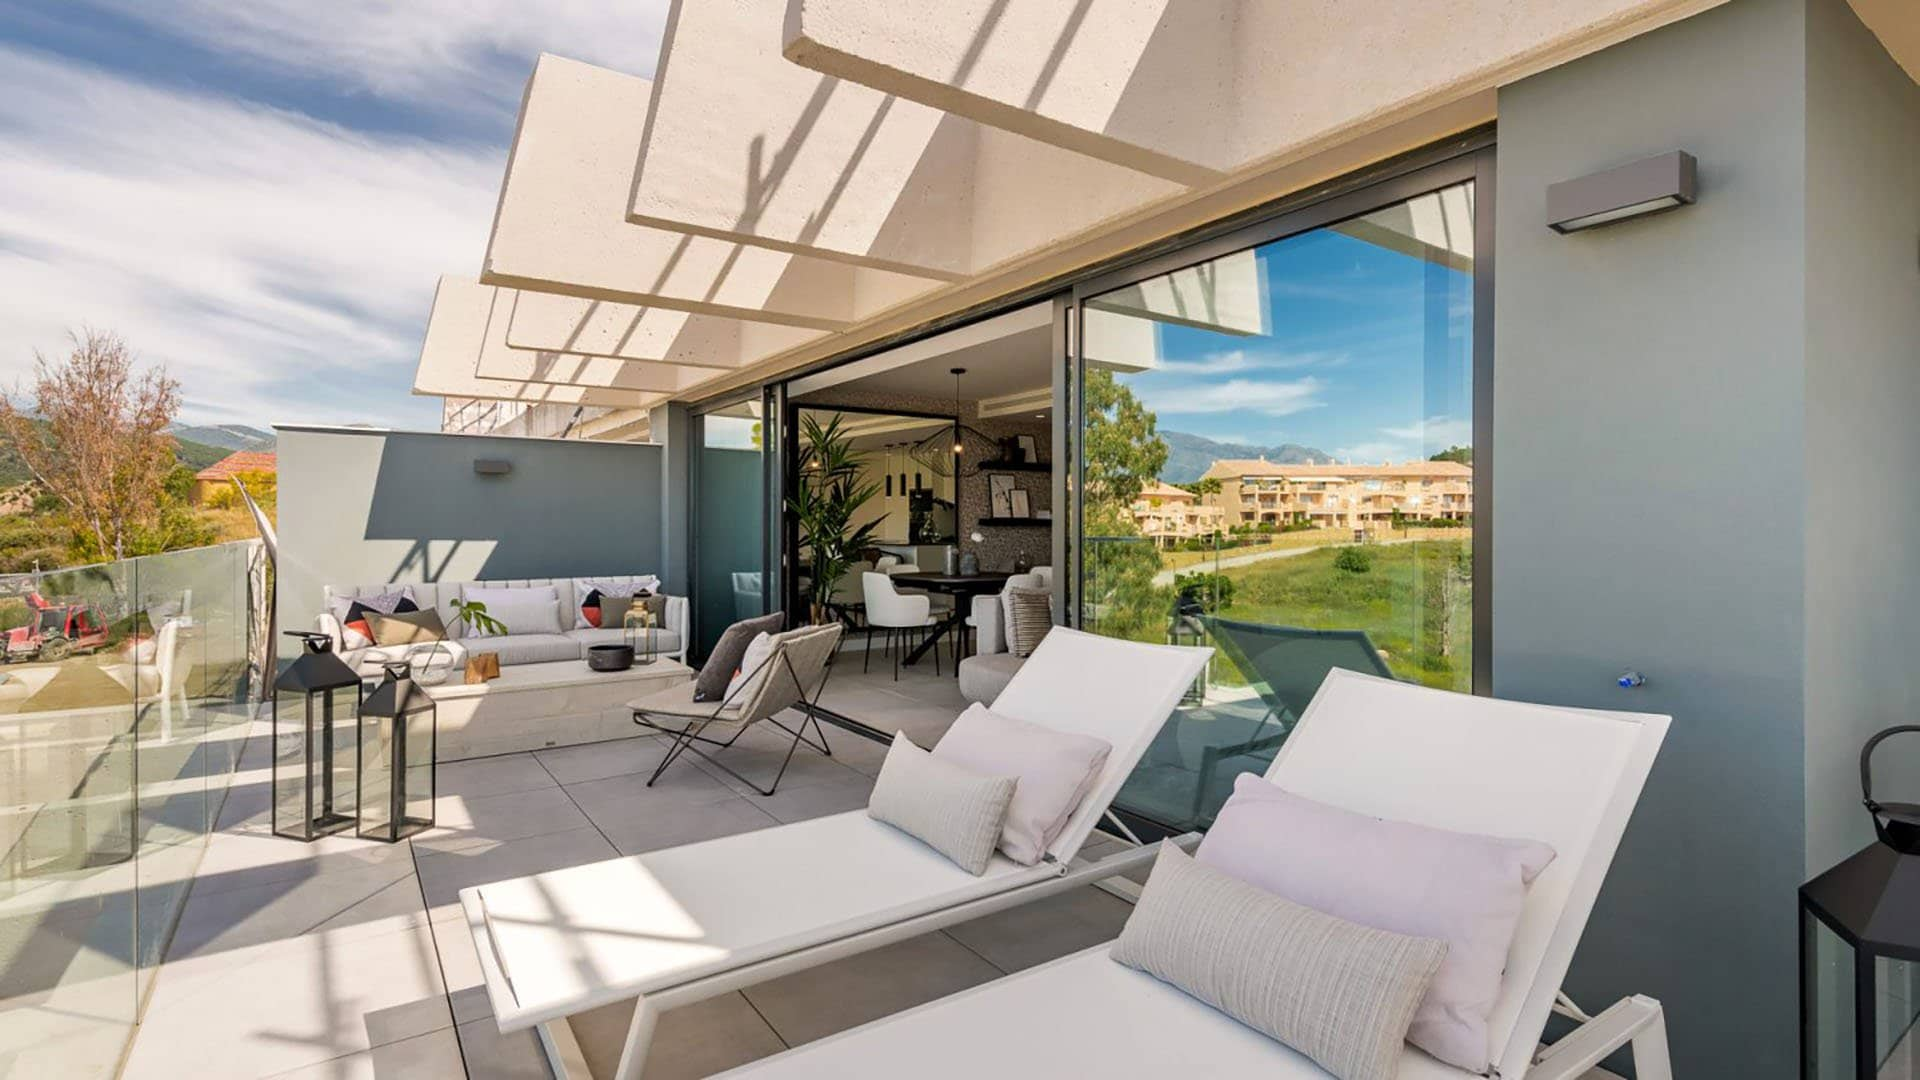 Oasis 325: Well priced apartments in the heart of the Costa del Sol